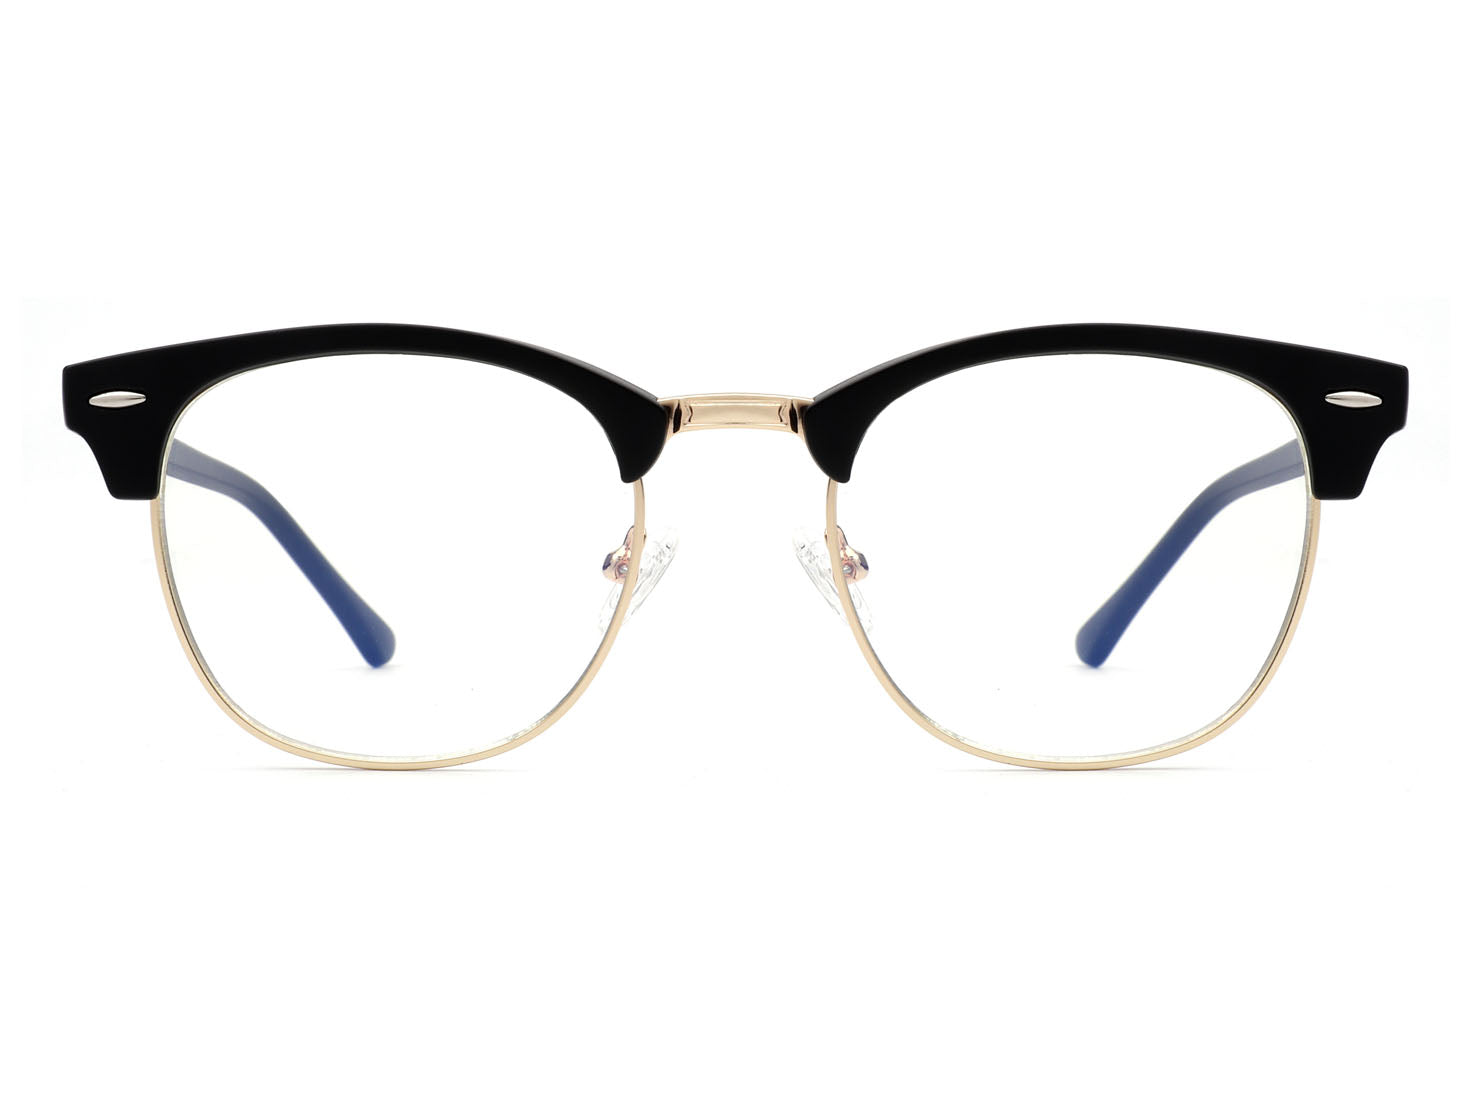 B2007 - Classic Half Frame Fashion Round Blue Light Glasses